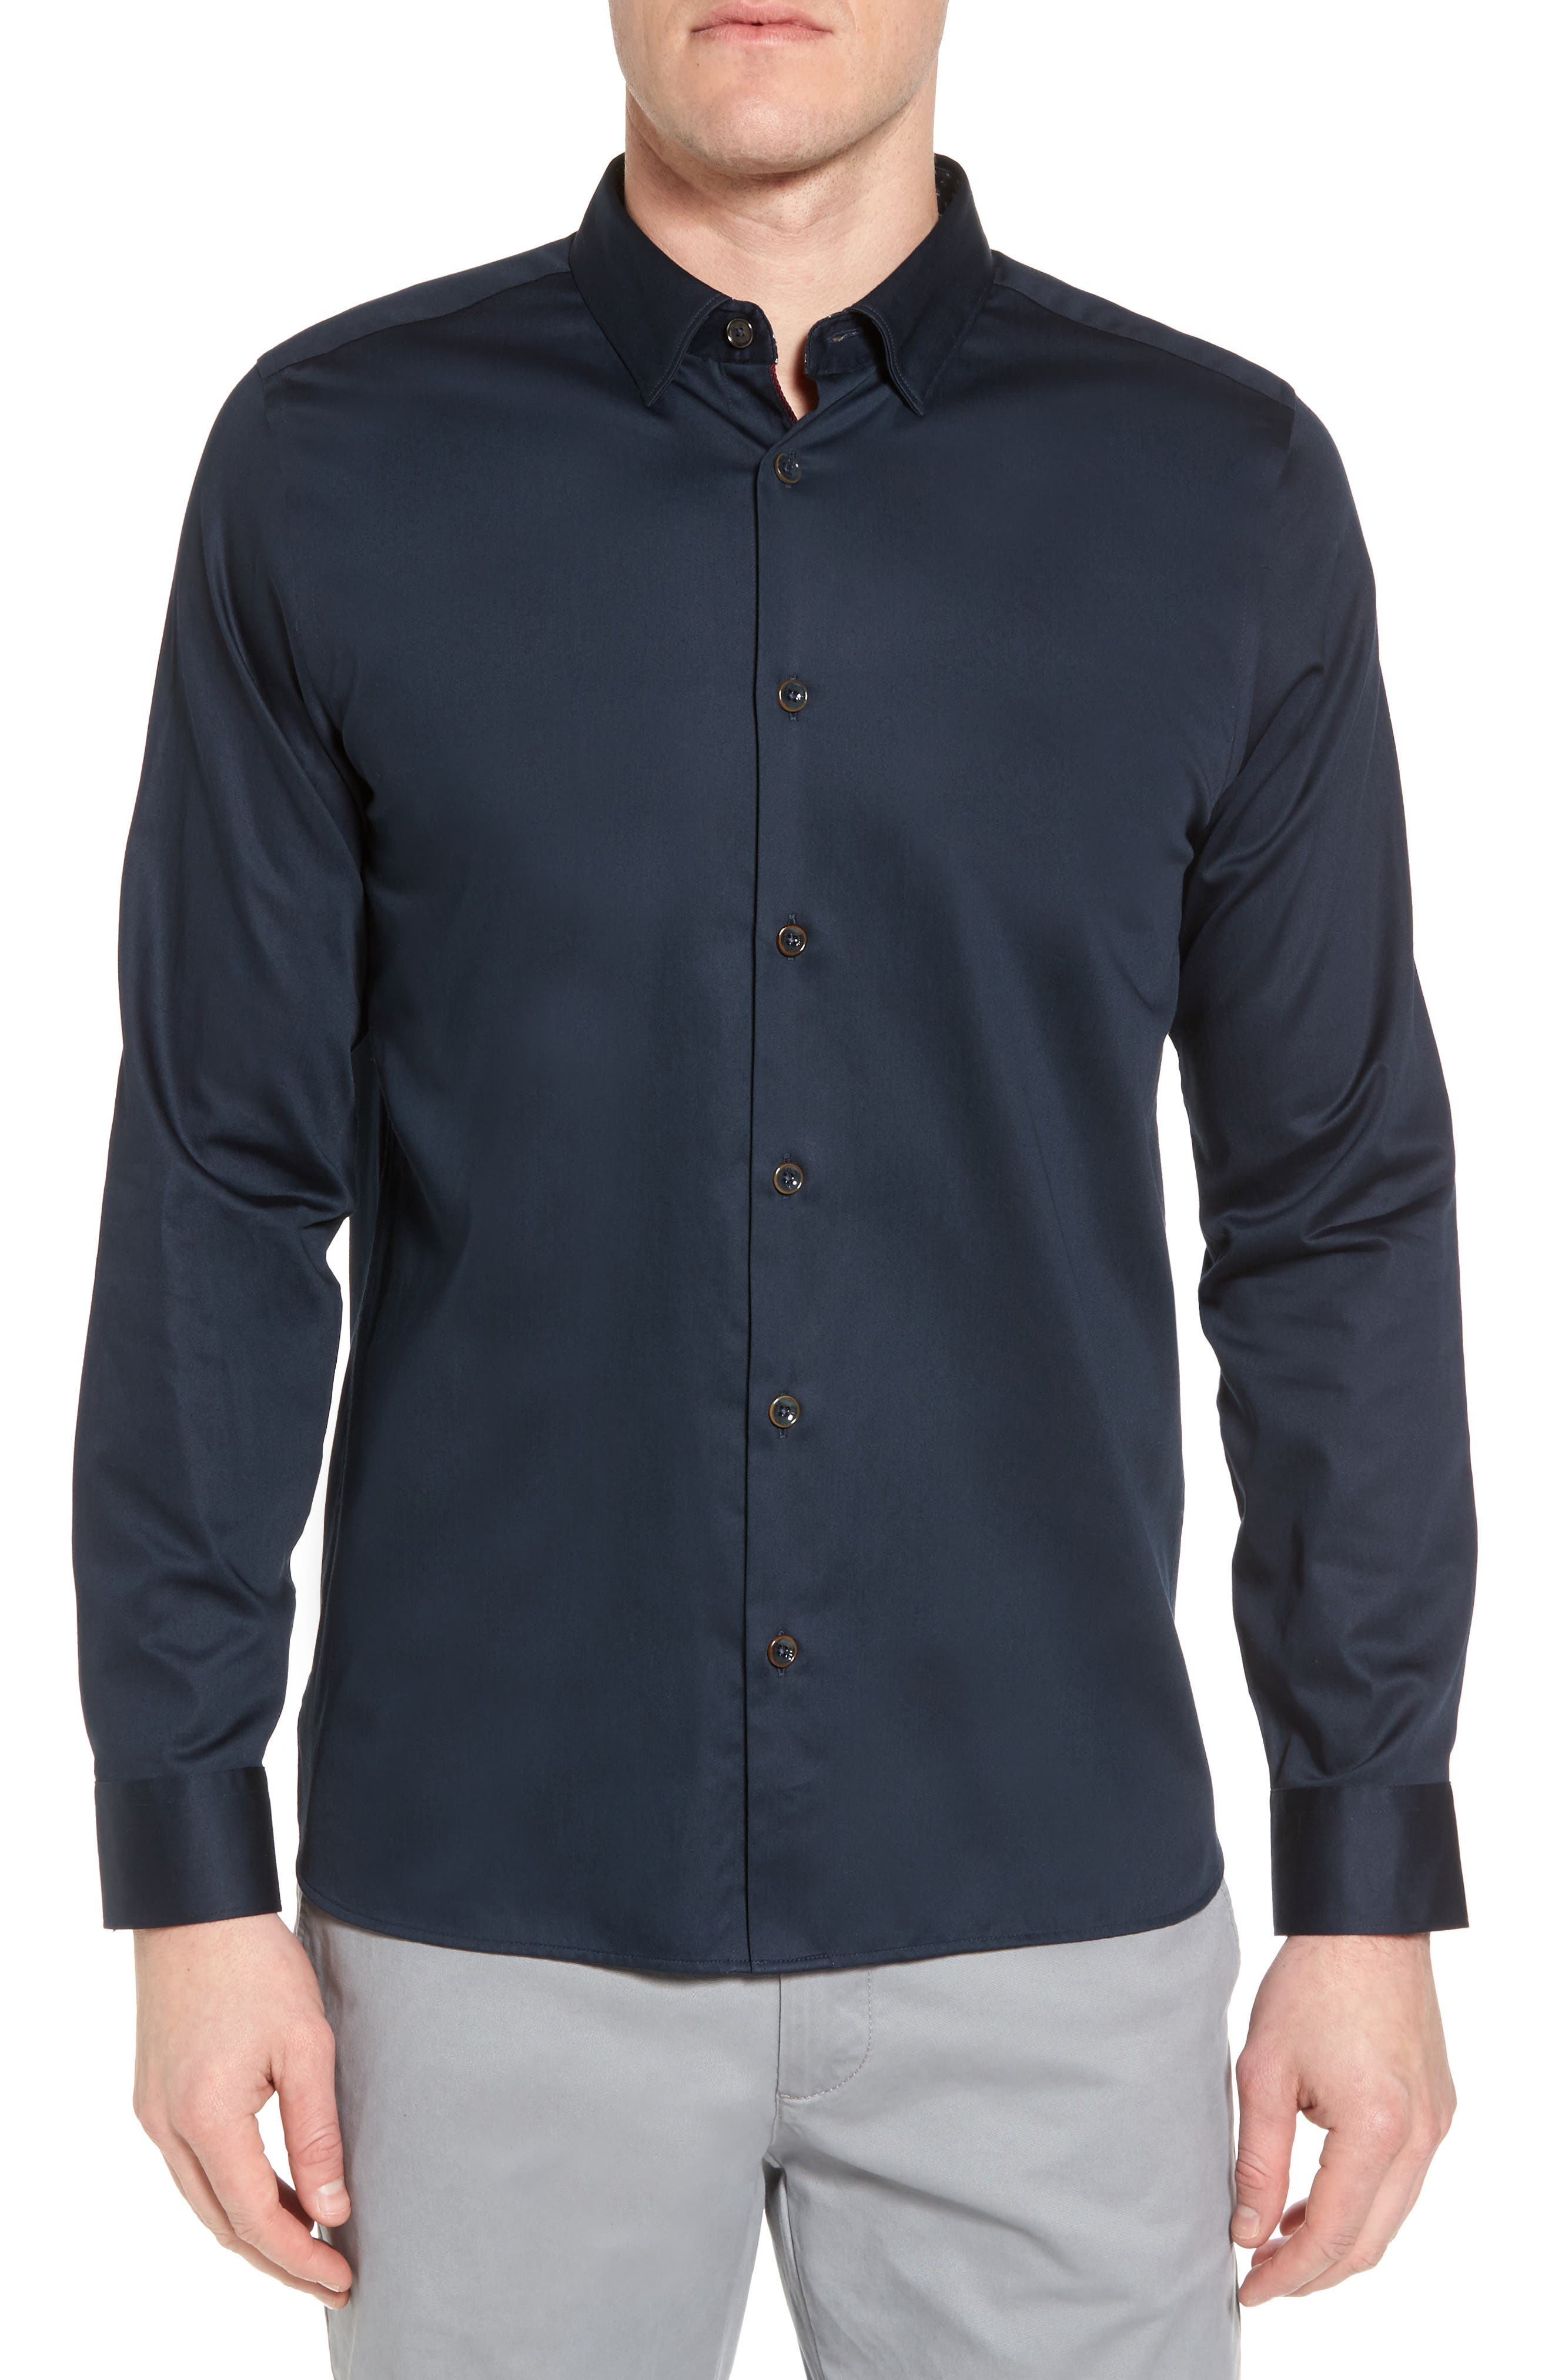 Byllytt Extra Slim Fit Stretch Solid Sport Shirt,                         Main,                         color, Navy